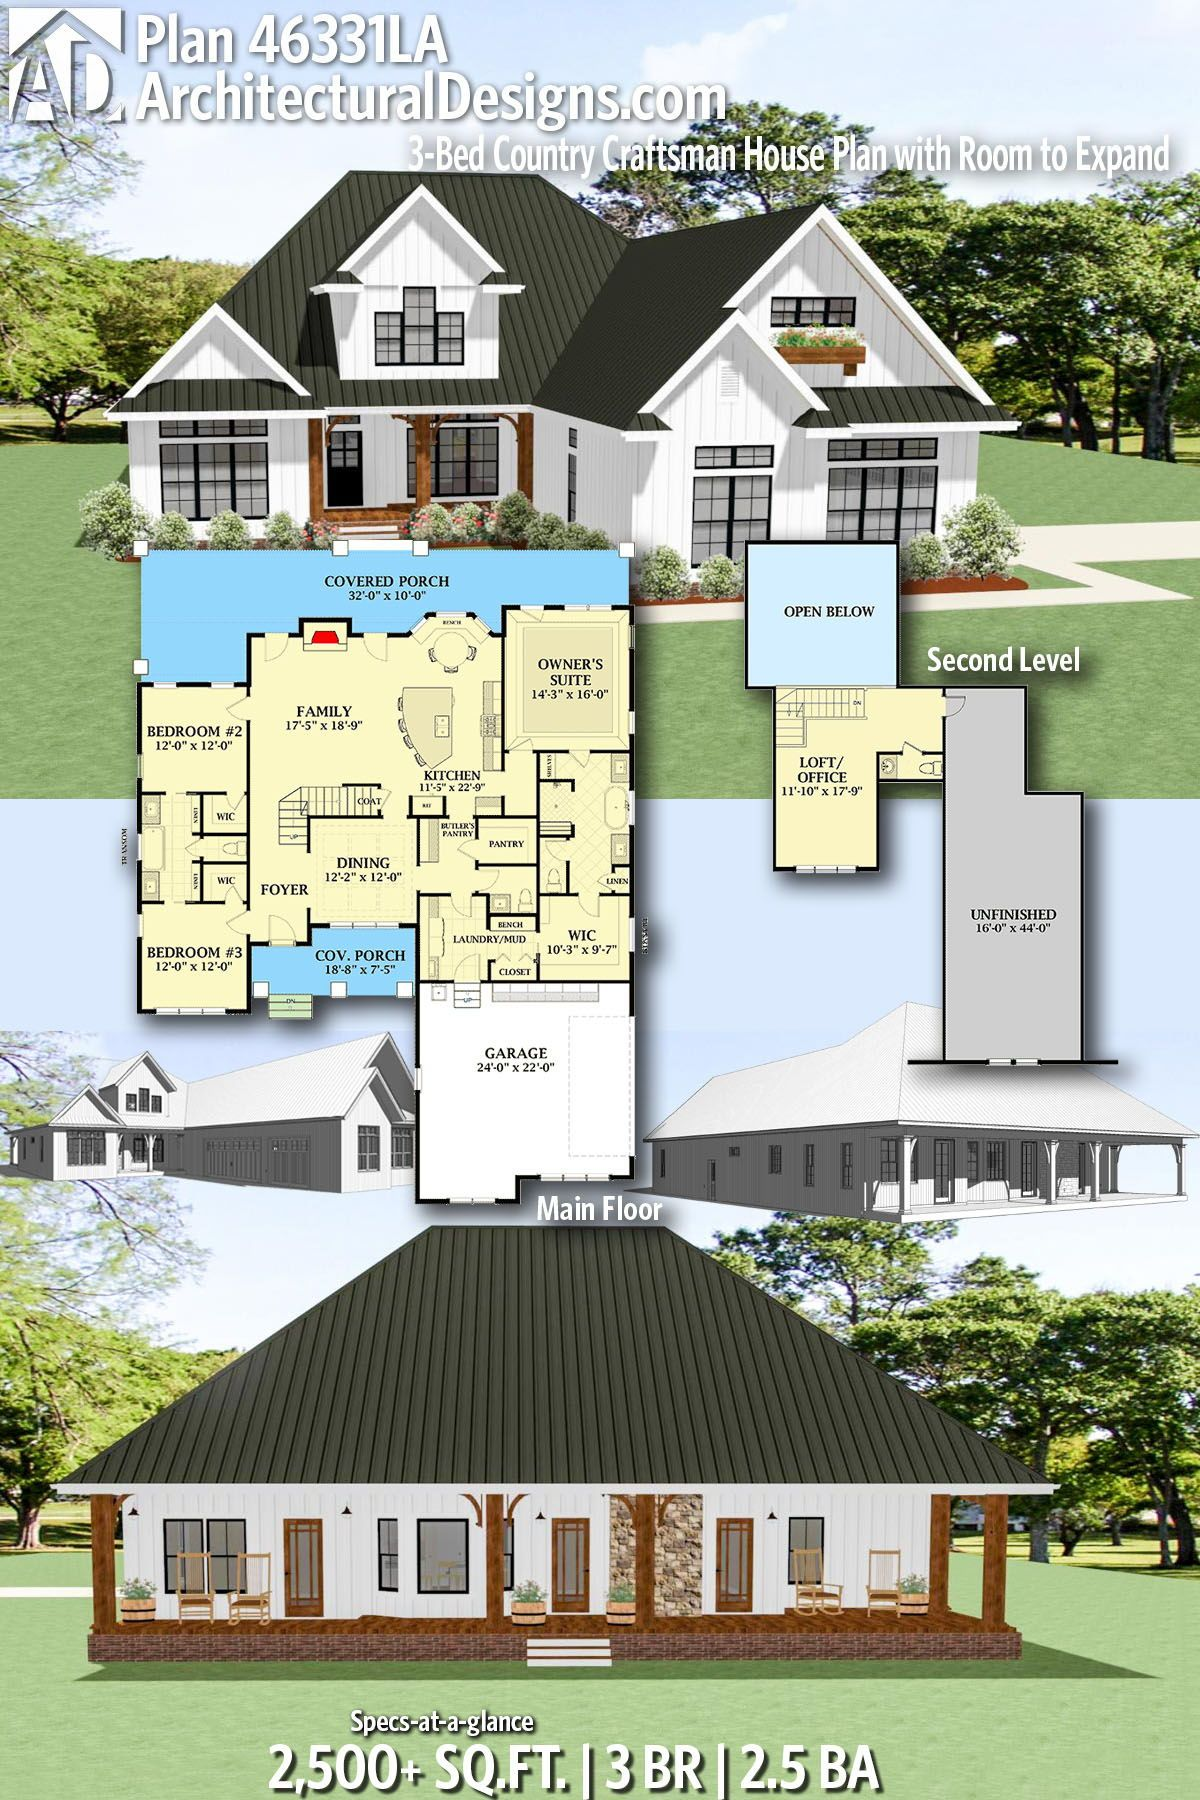 Plan 46331la 3 Bed Country Craftsman House Plan With Room To Expand In 2020 House Plans Craftsman House Plan Craftsman House